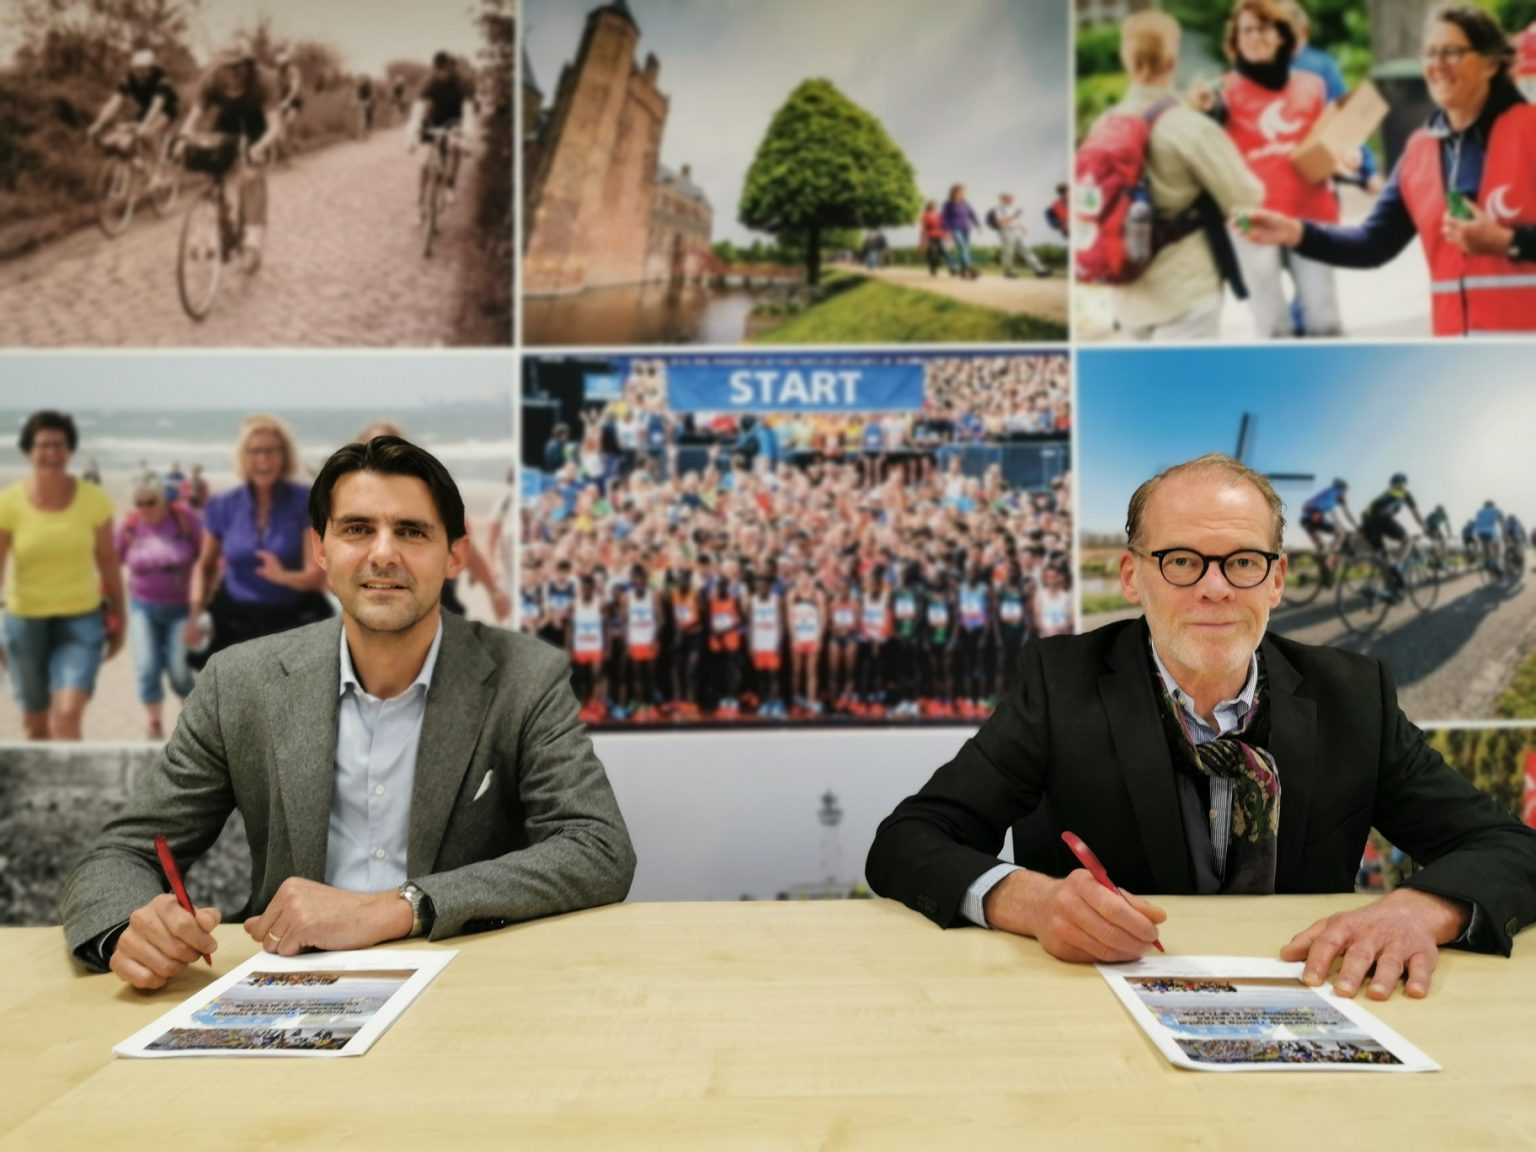 MYLAPS and Le Champion extend partnership